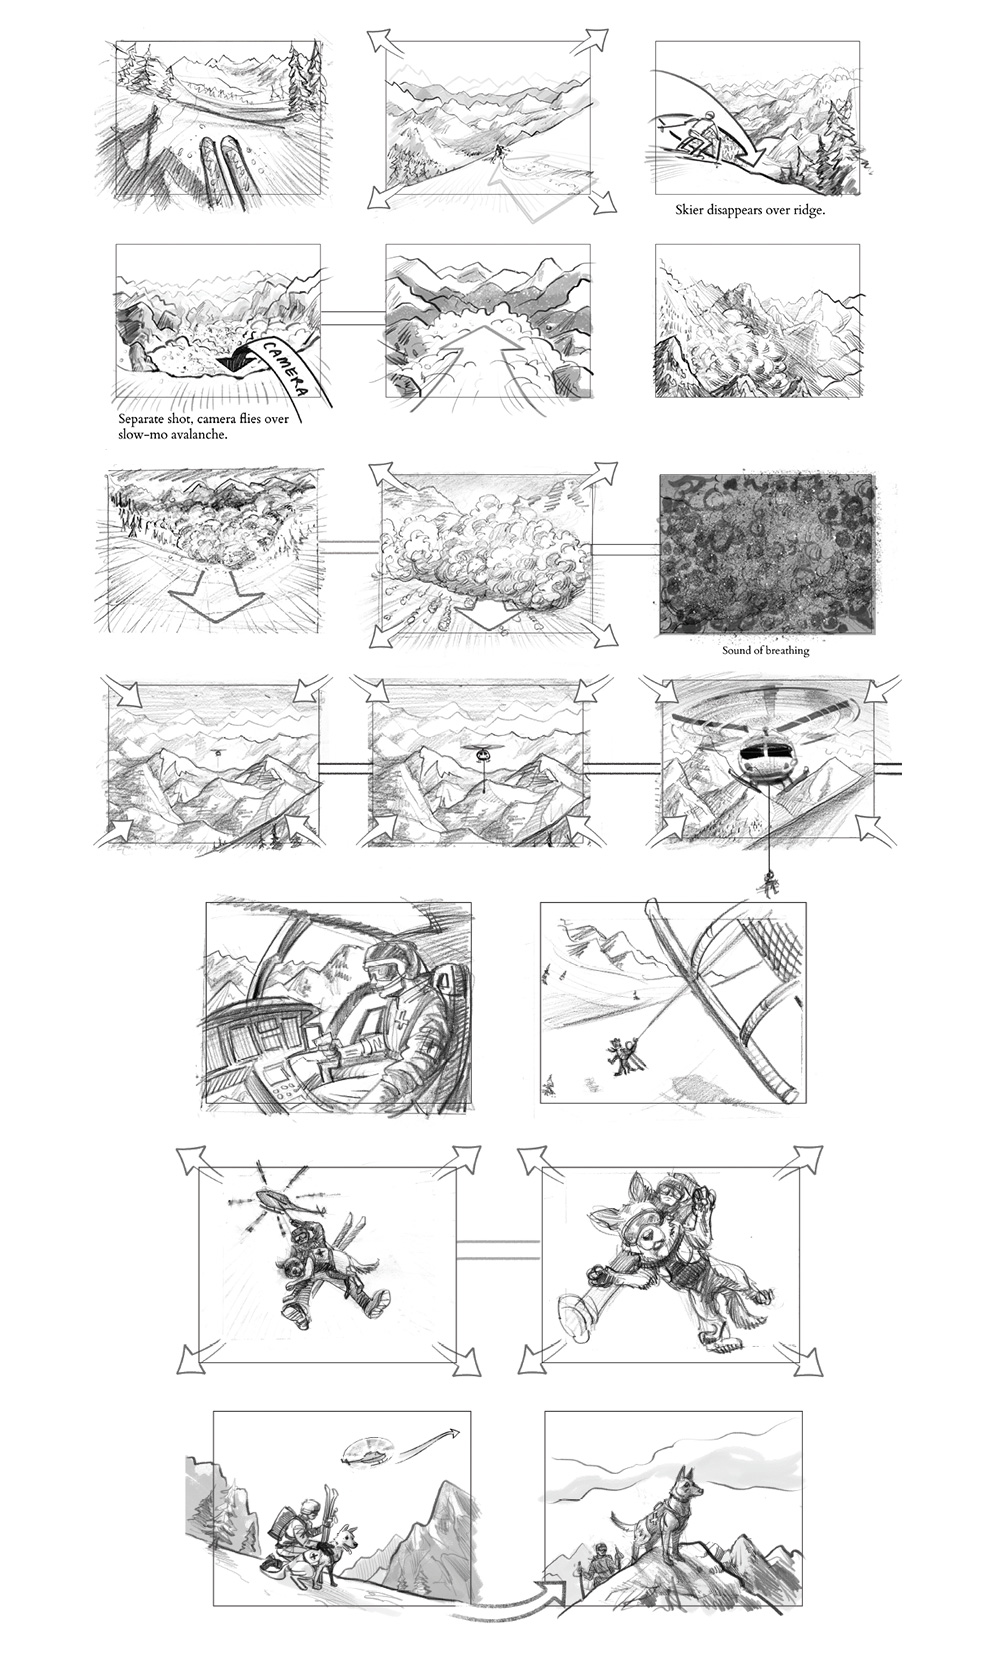 IMAX Film Storyboards